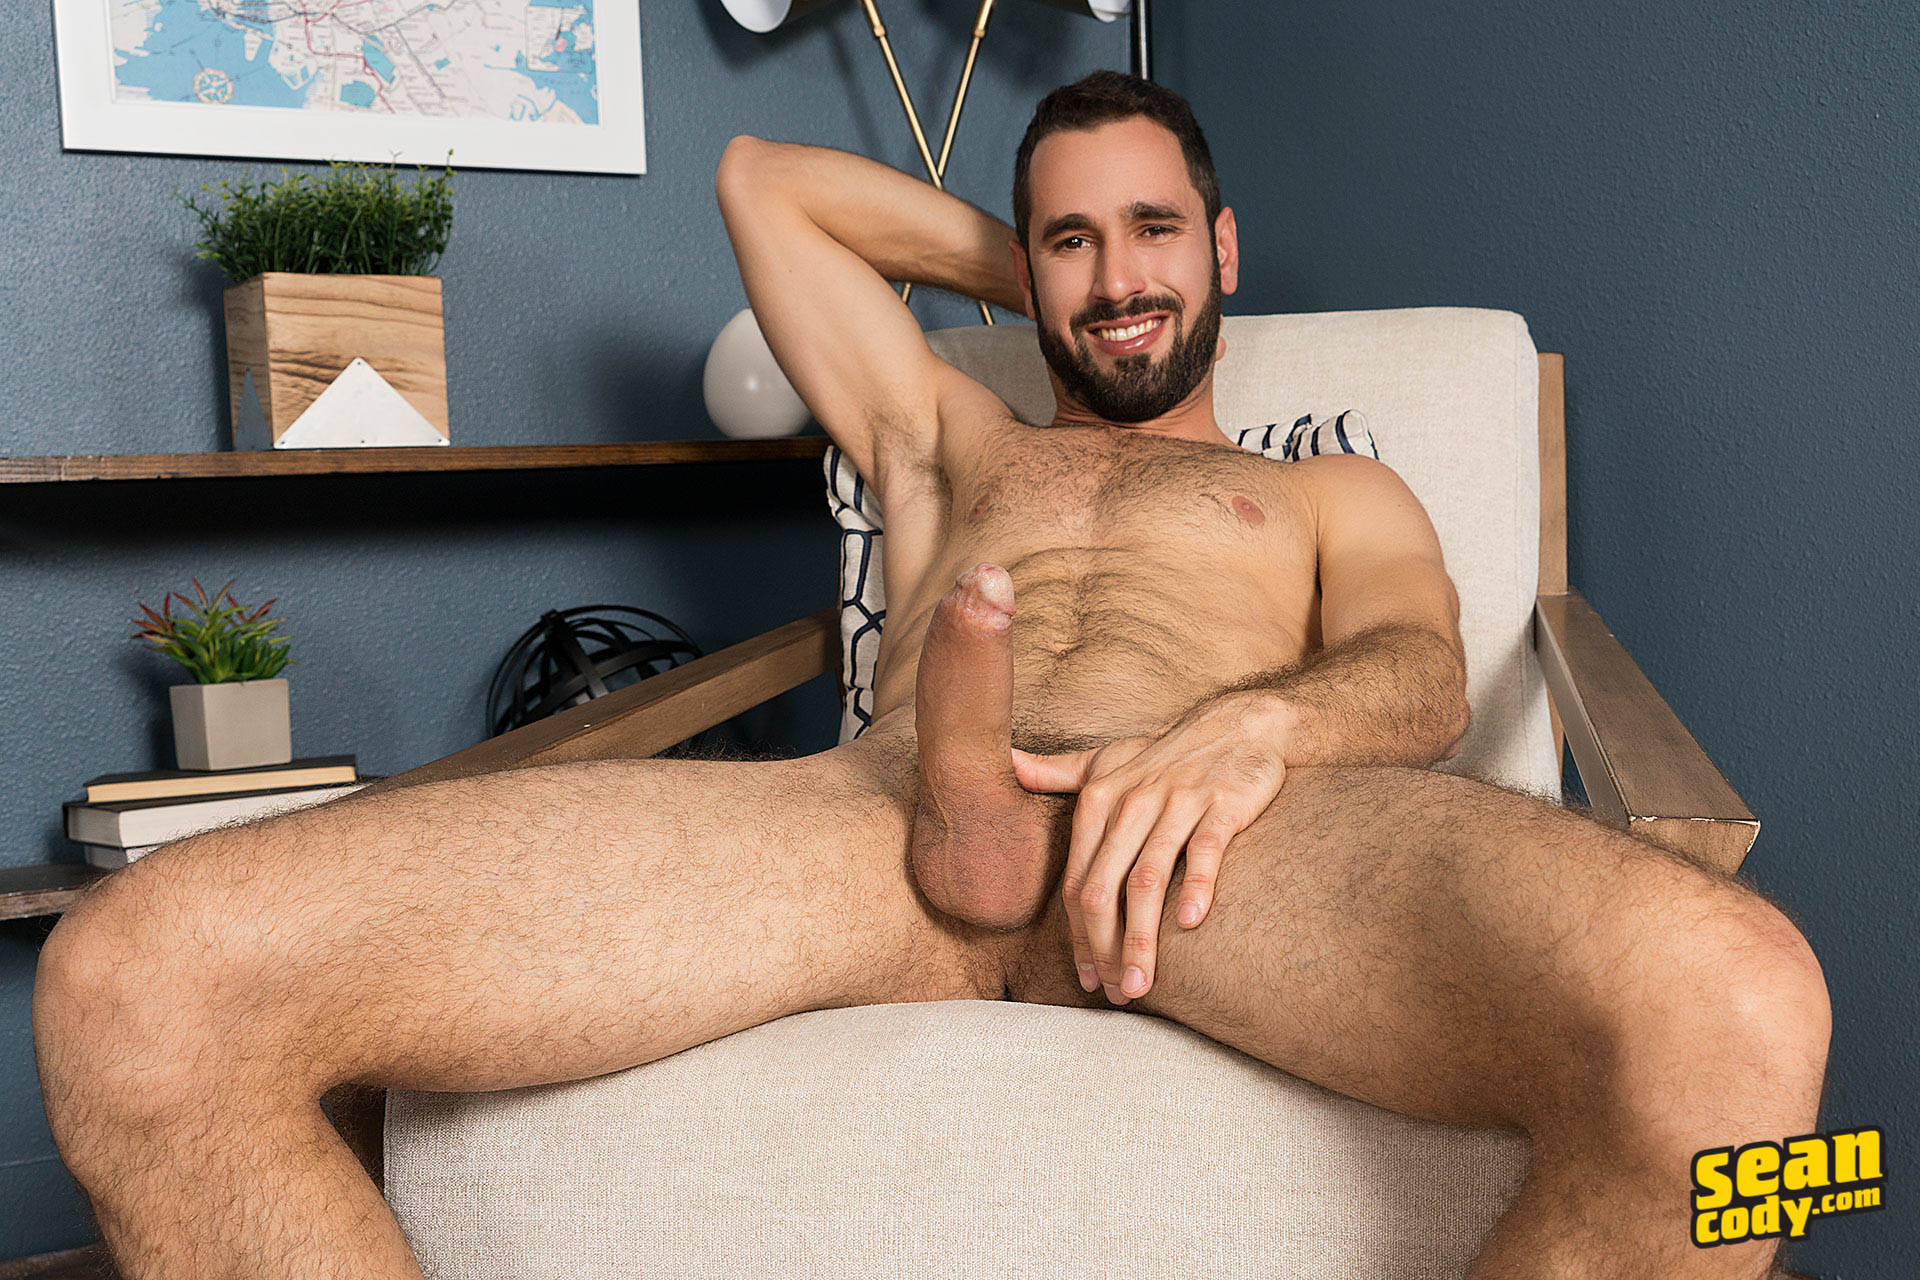 Hector Stuffed His Hot Dick On